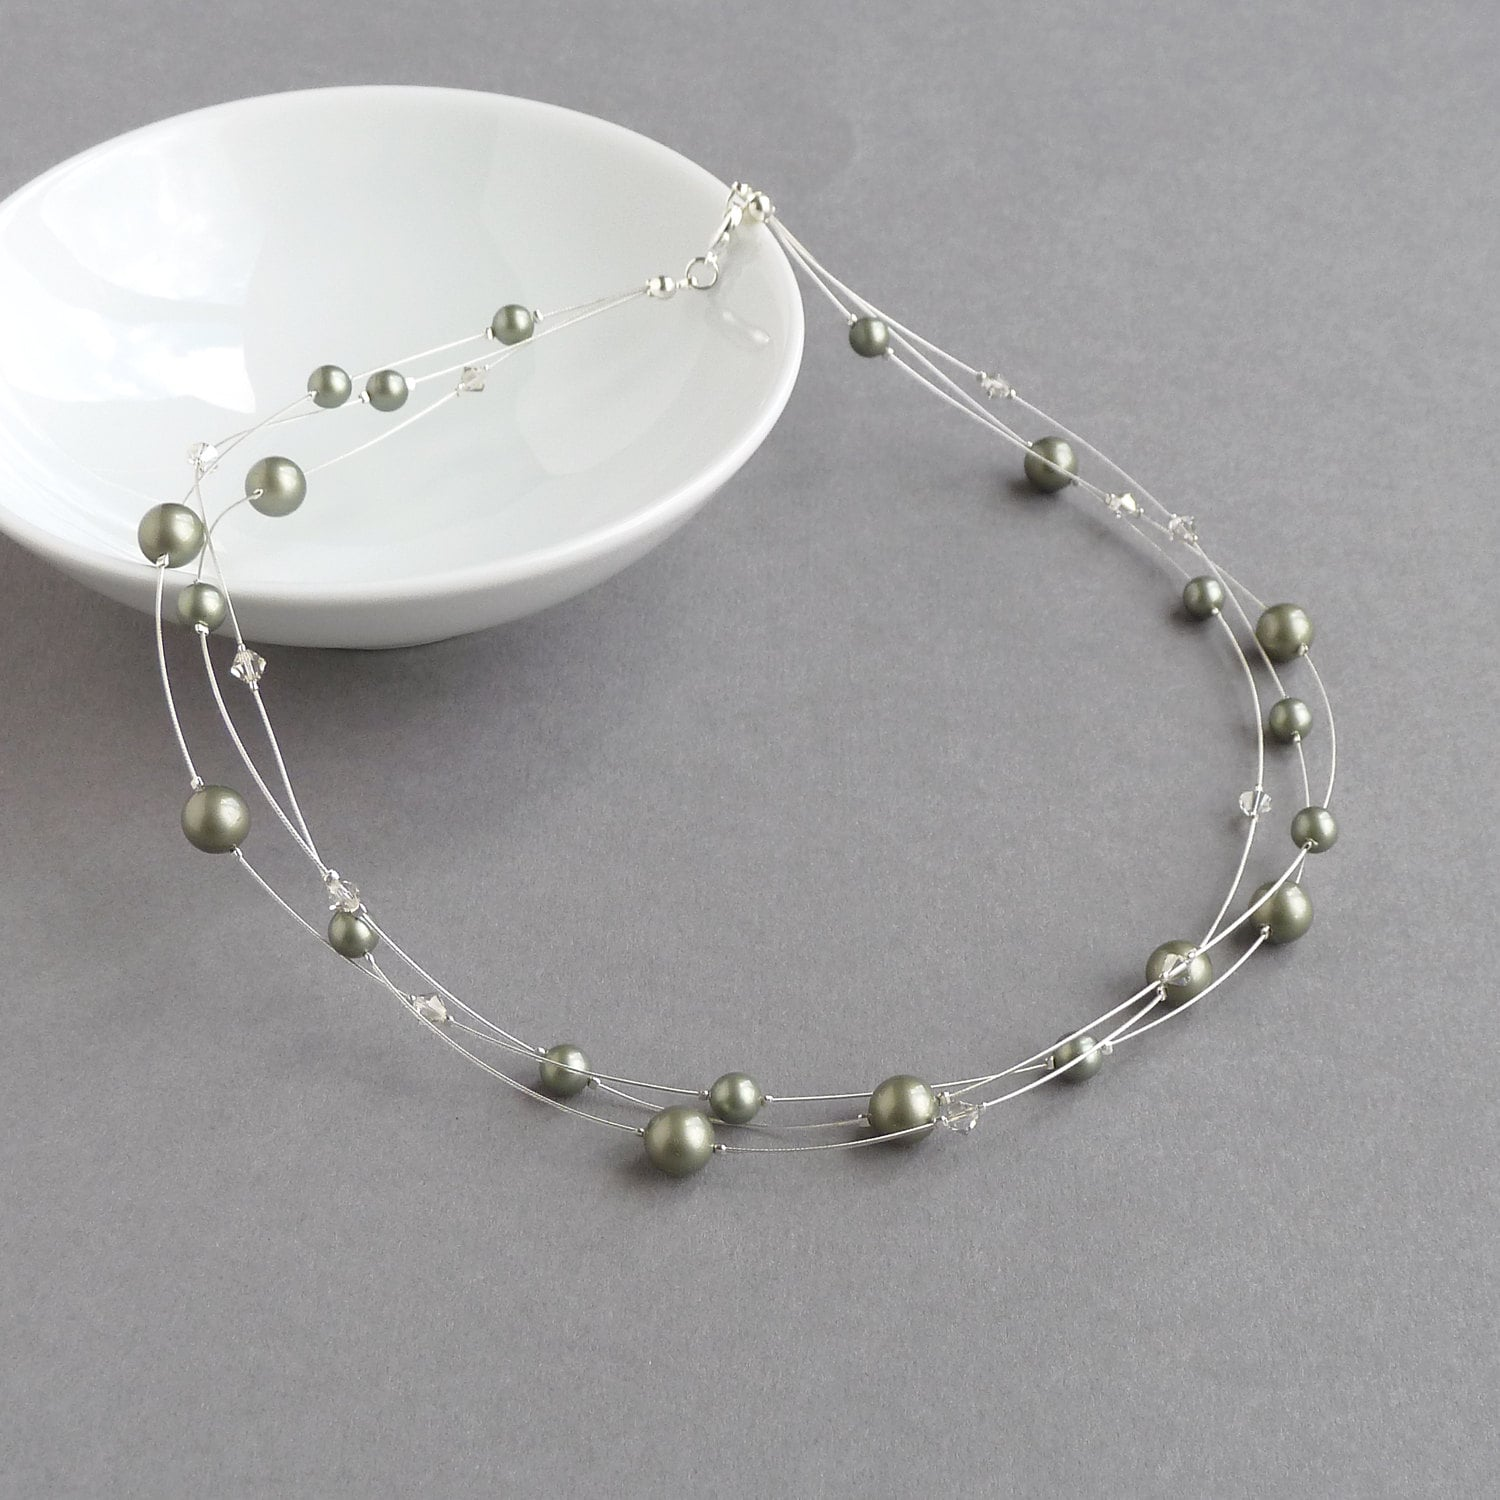 floating pearl necklace instructions